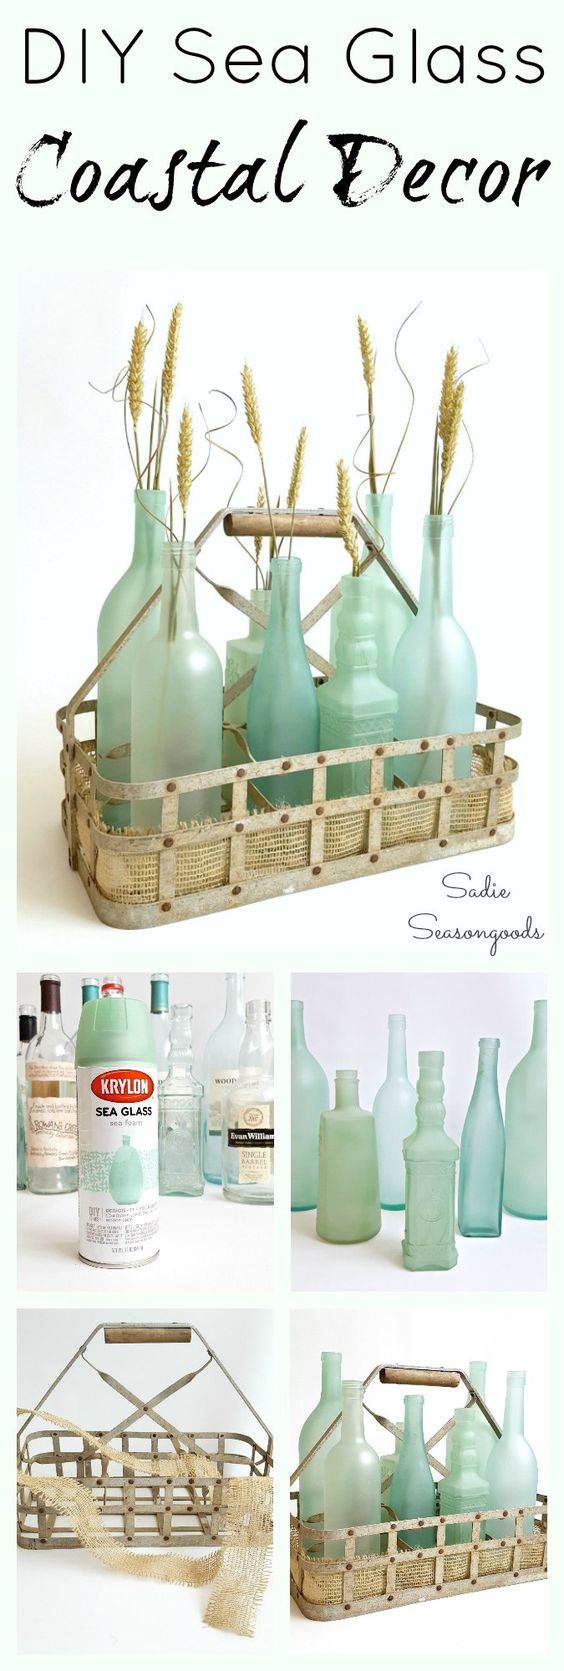 DIY Coastal Decor Using Sea Glass Spray Paint.